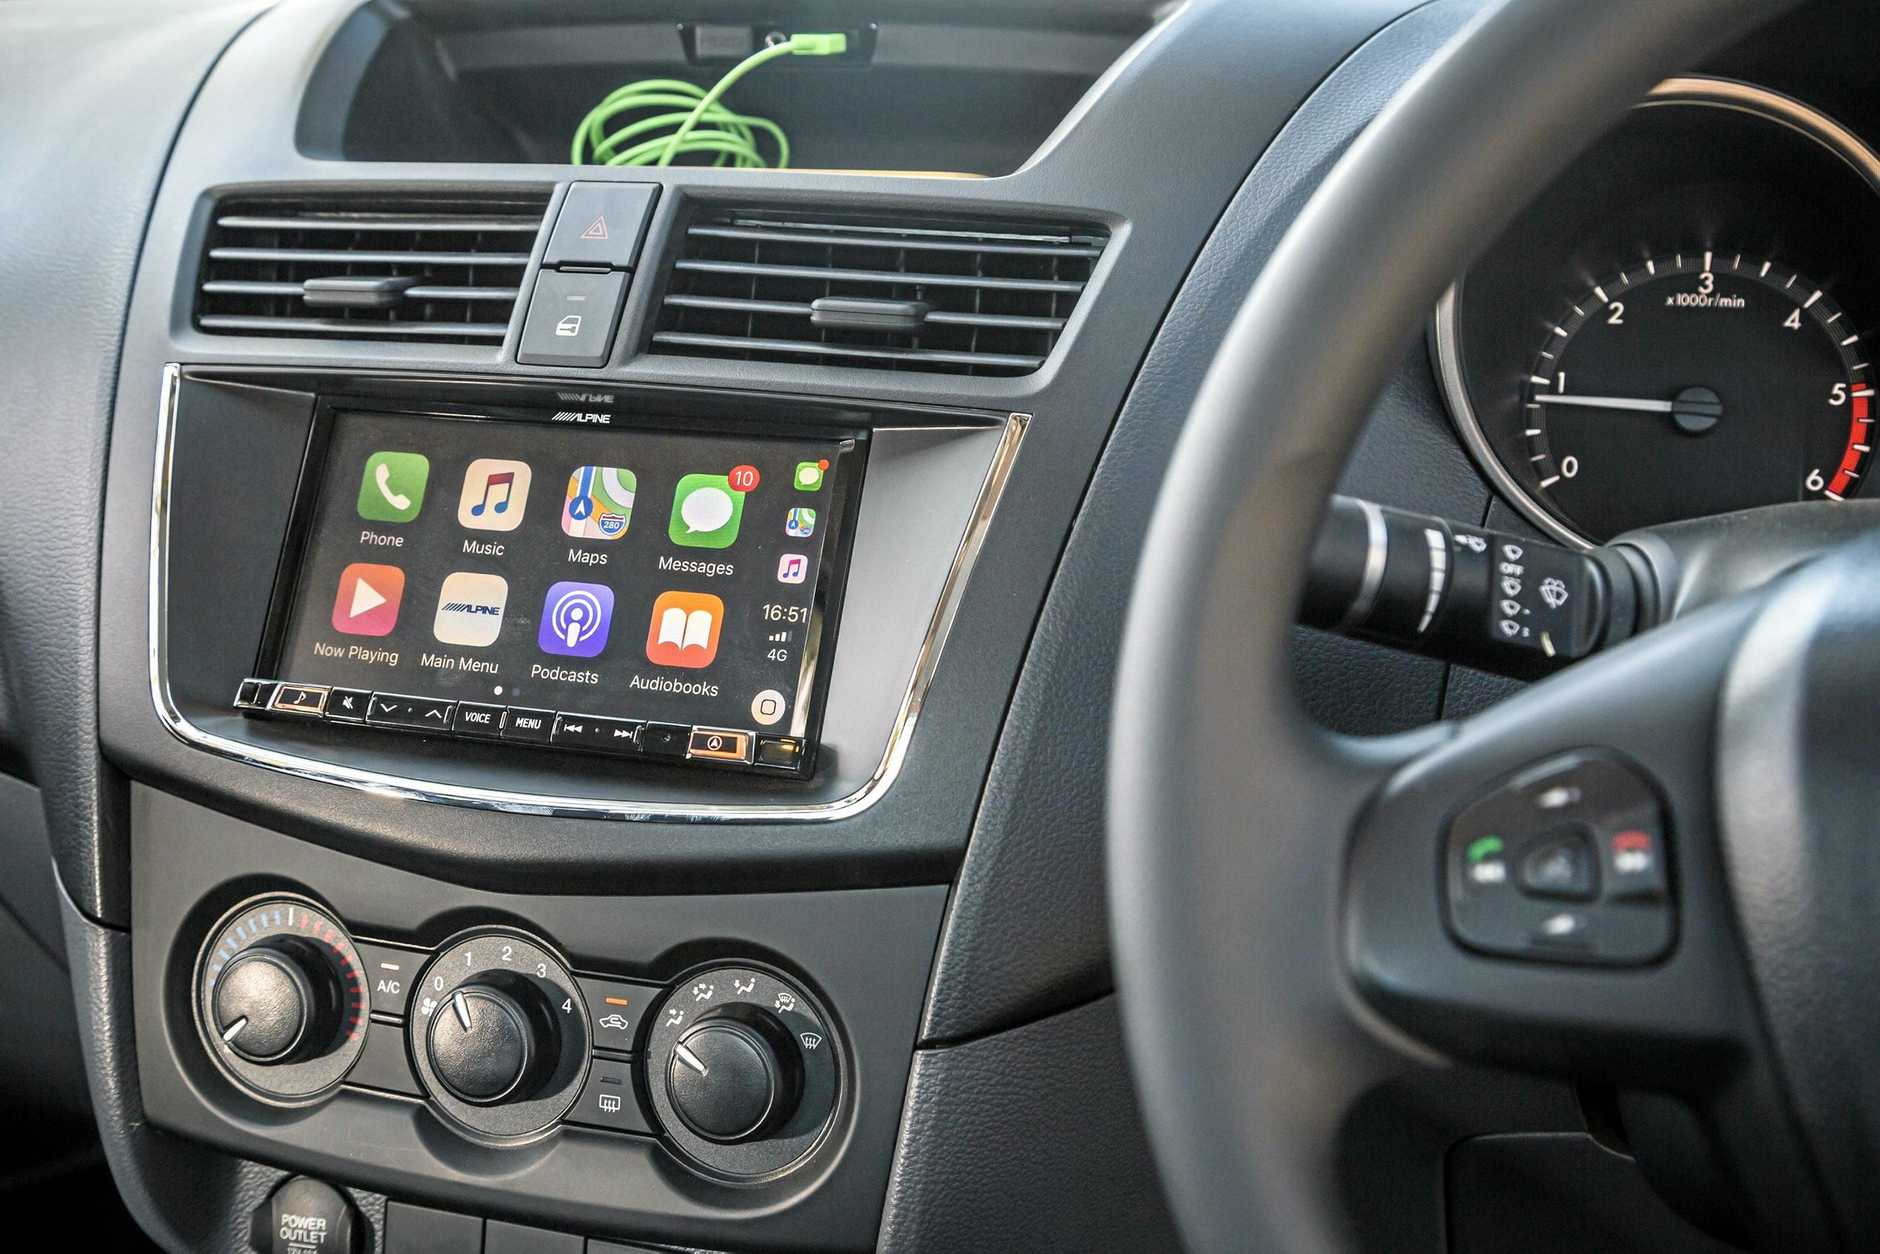 Mazda owners can upgrade to Apple CarPlay and Android Auto